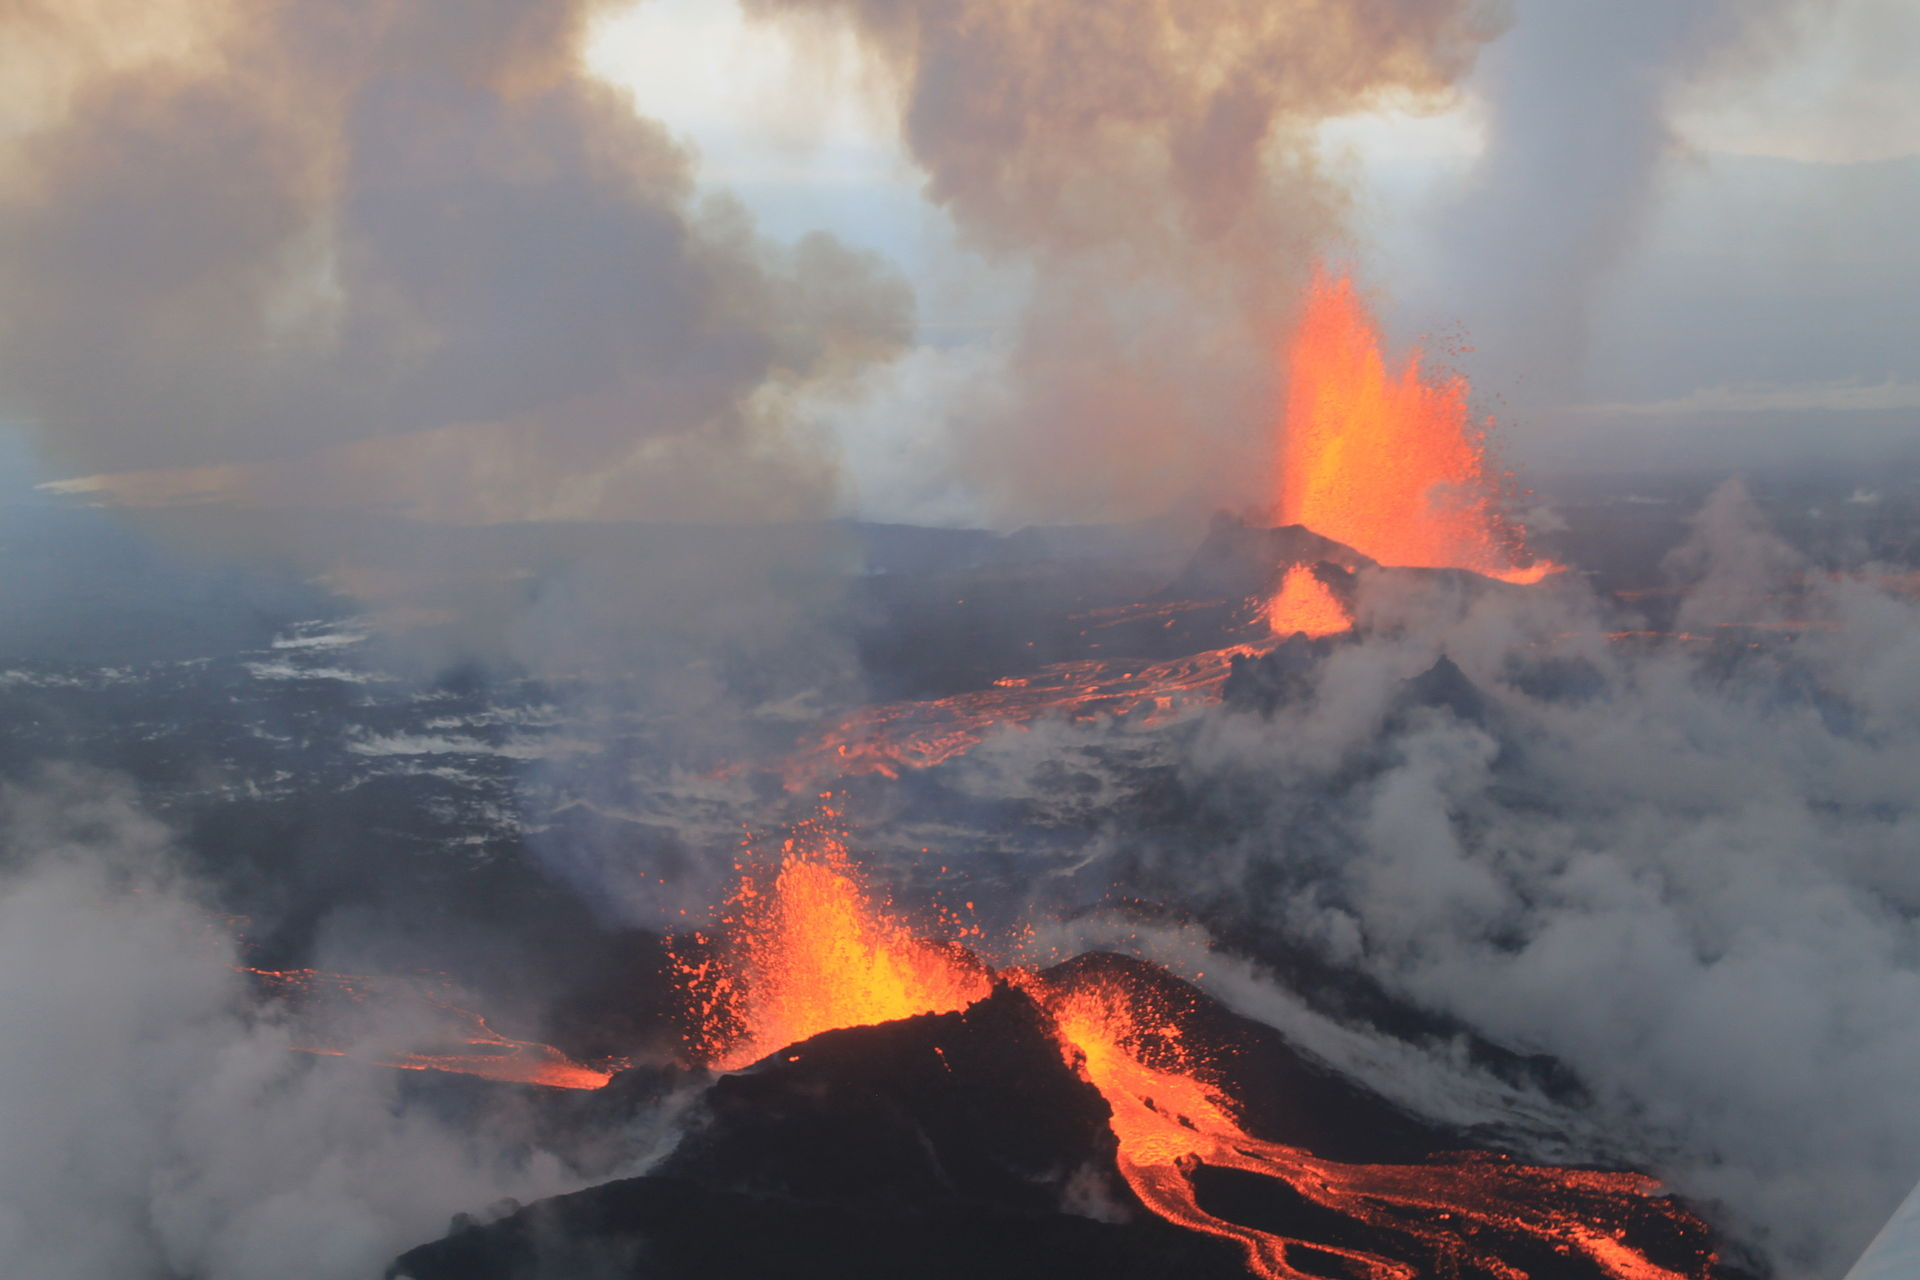 Eruption at Iceland's Holuhraun lava field